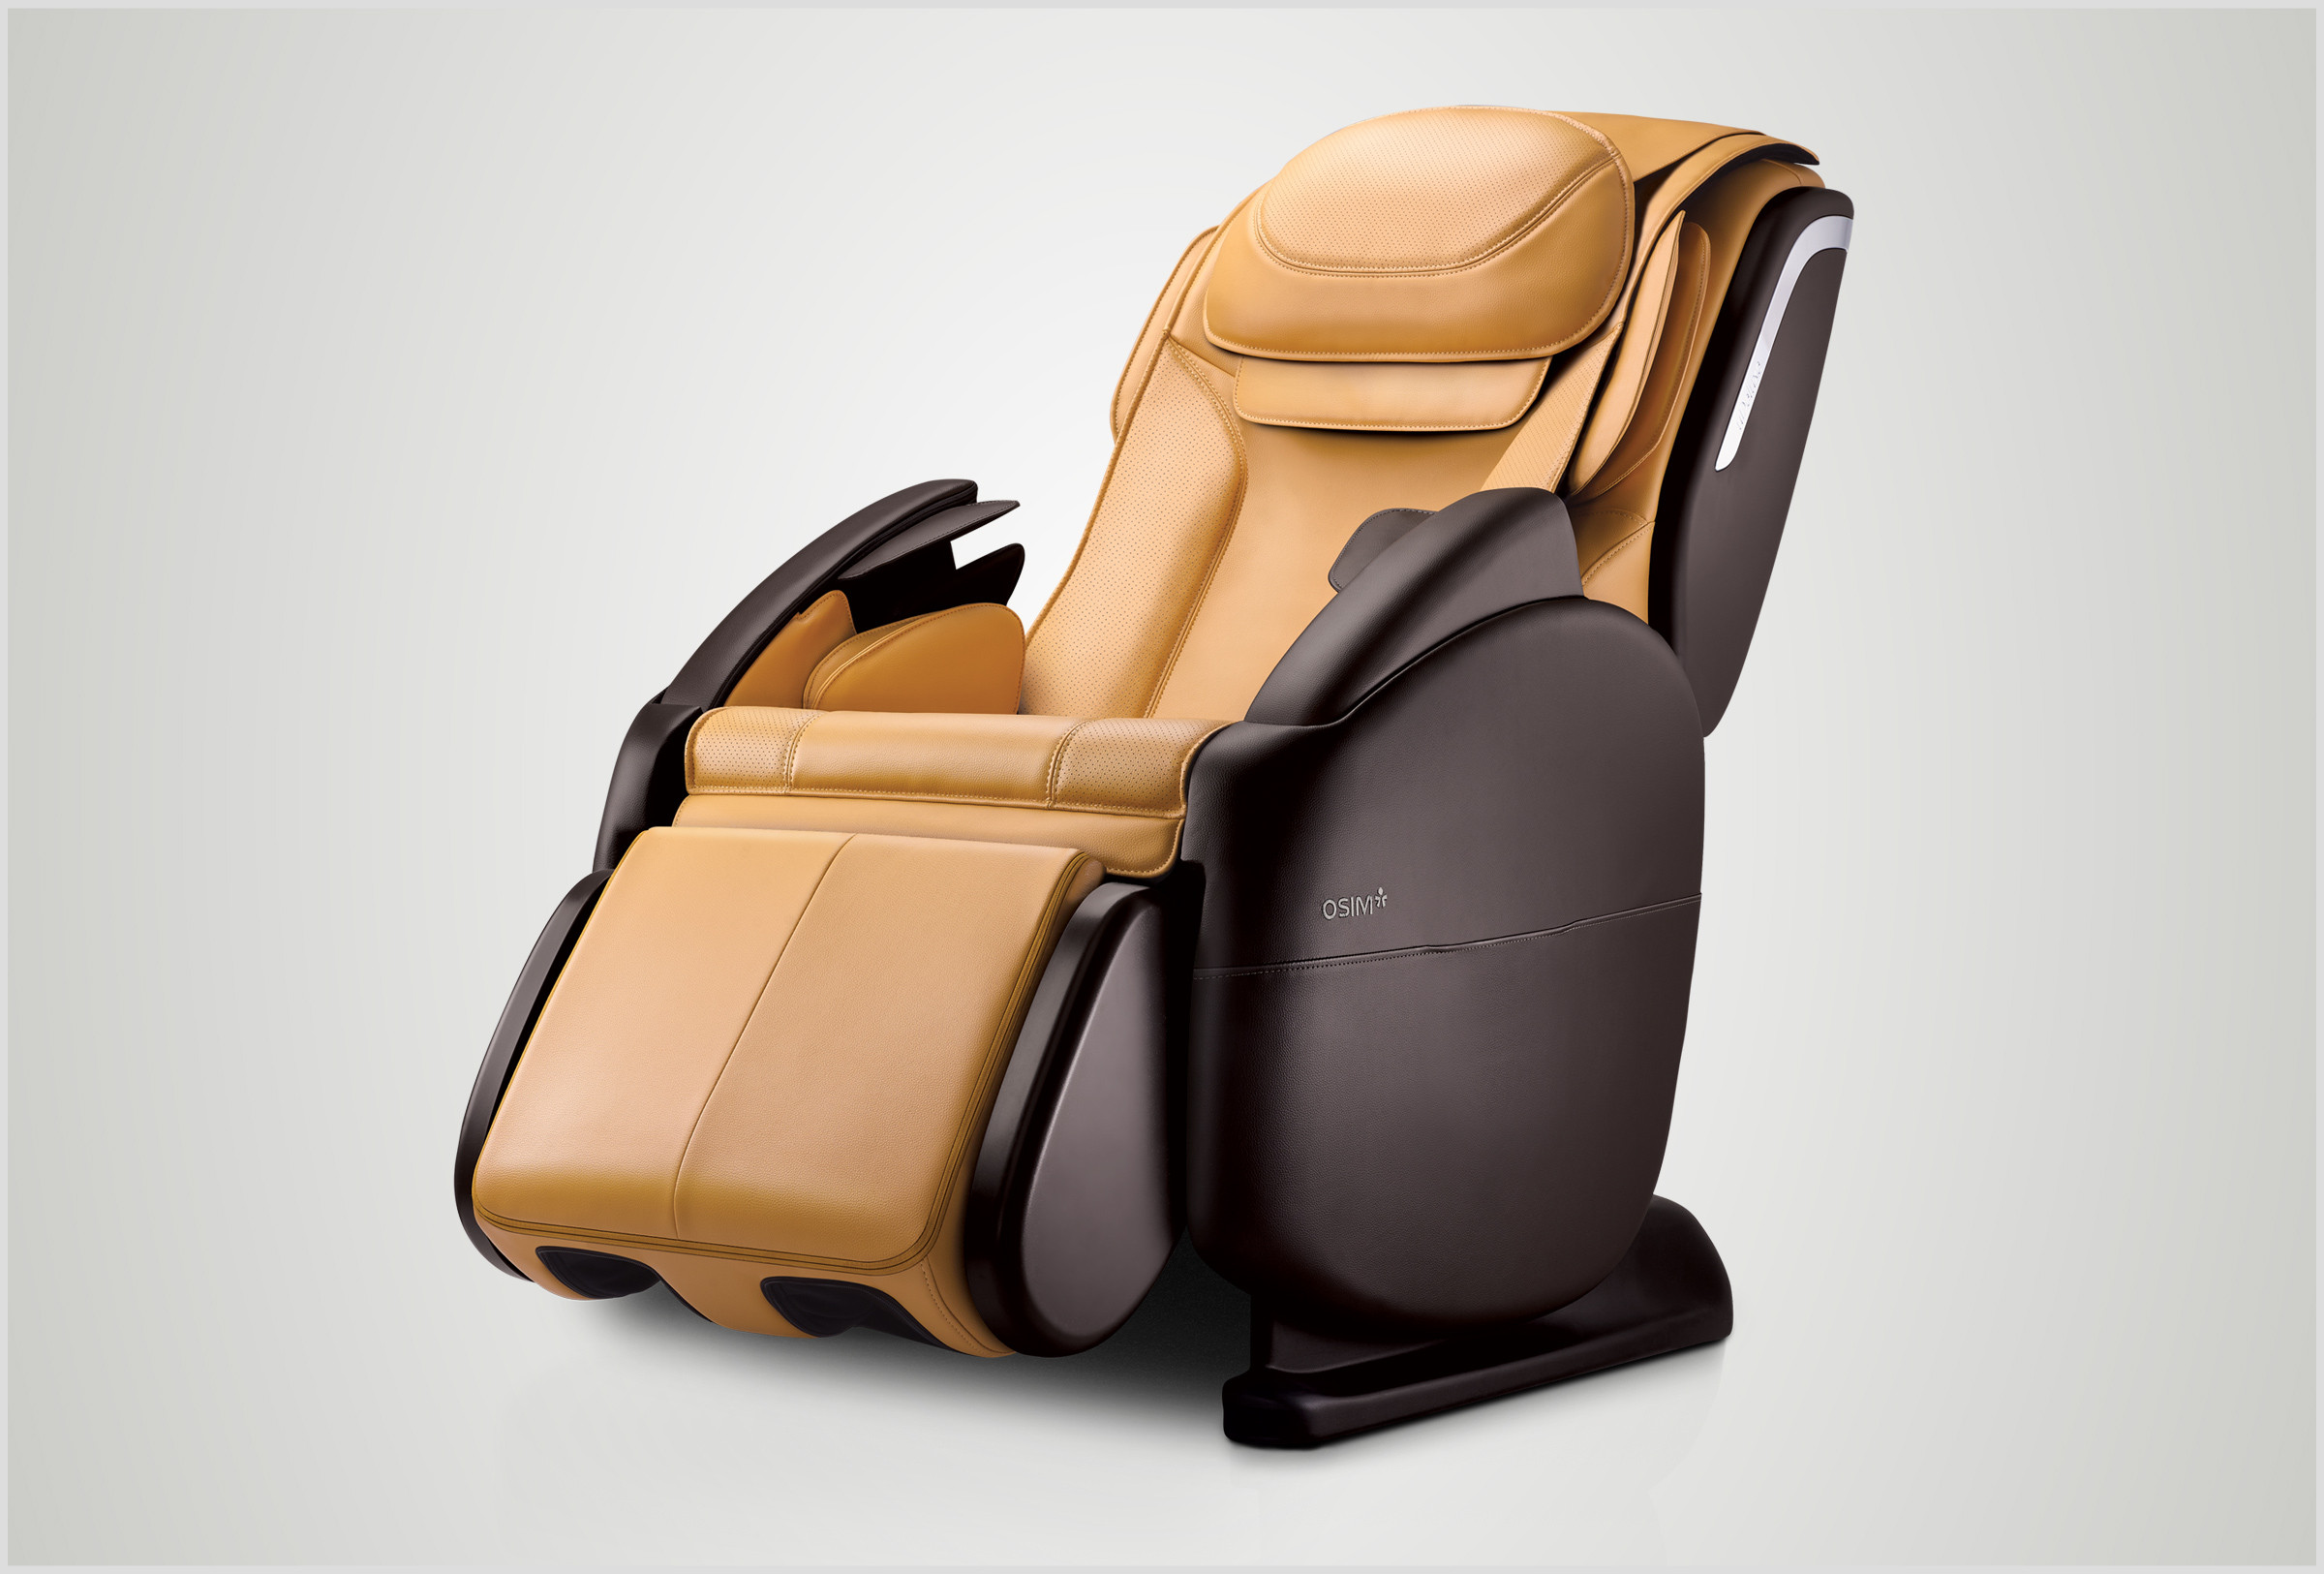 OSIM Webshop OSIM uDeluxe Massage Chair